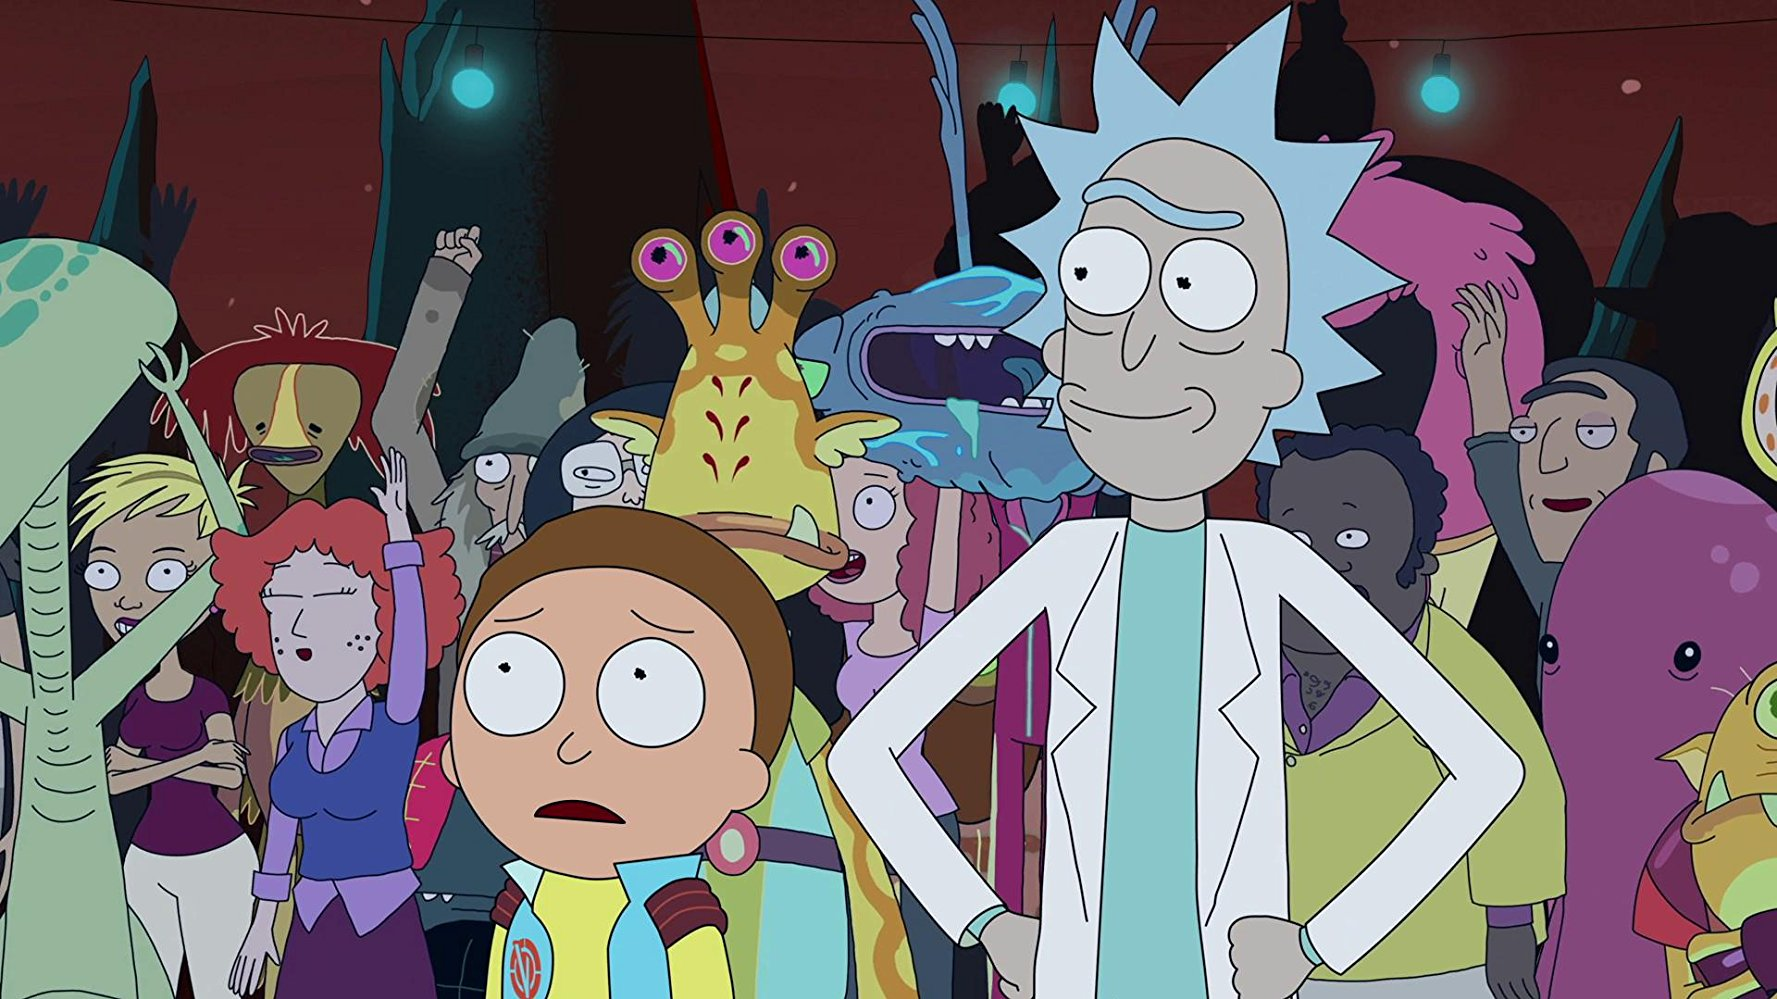 How to Watch Rick and Morty Season 4 Episode 2 Legally